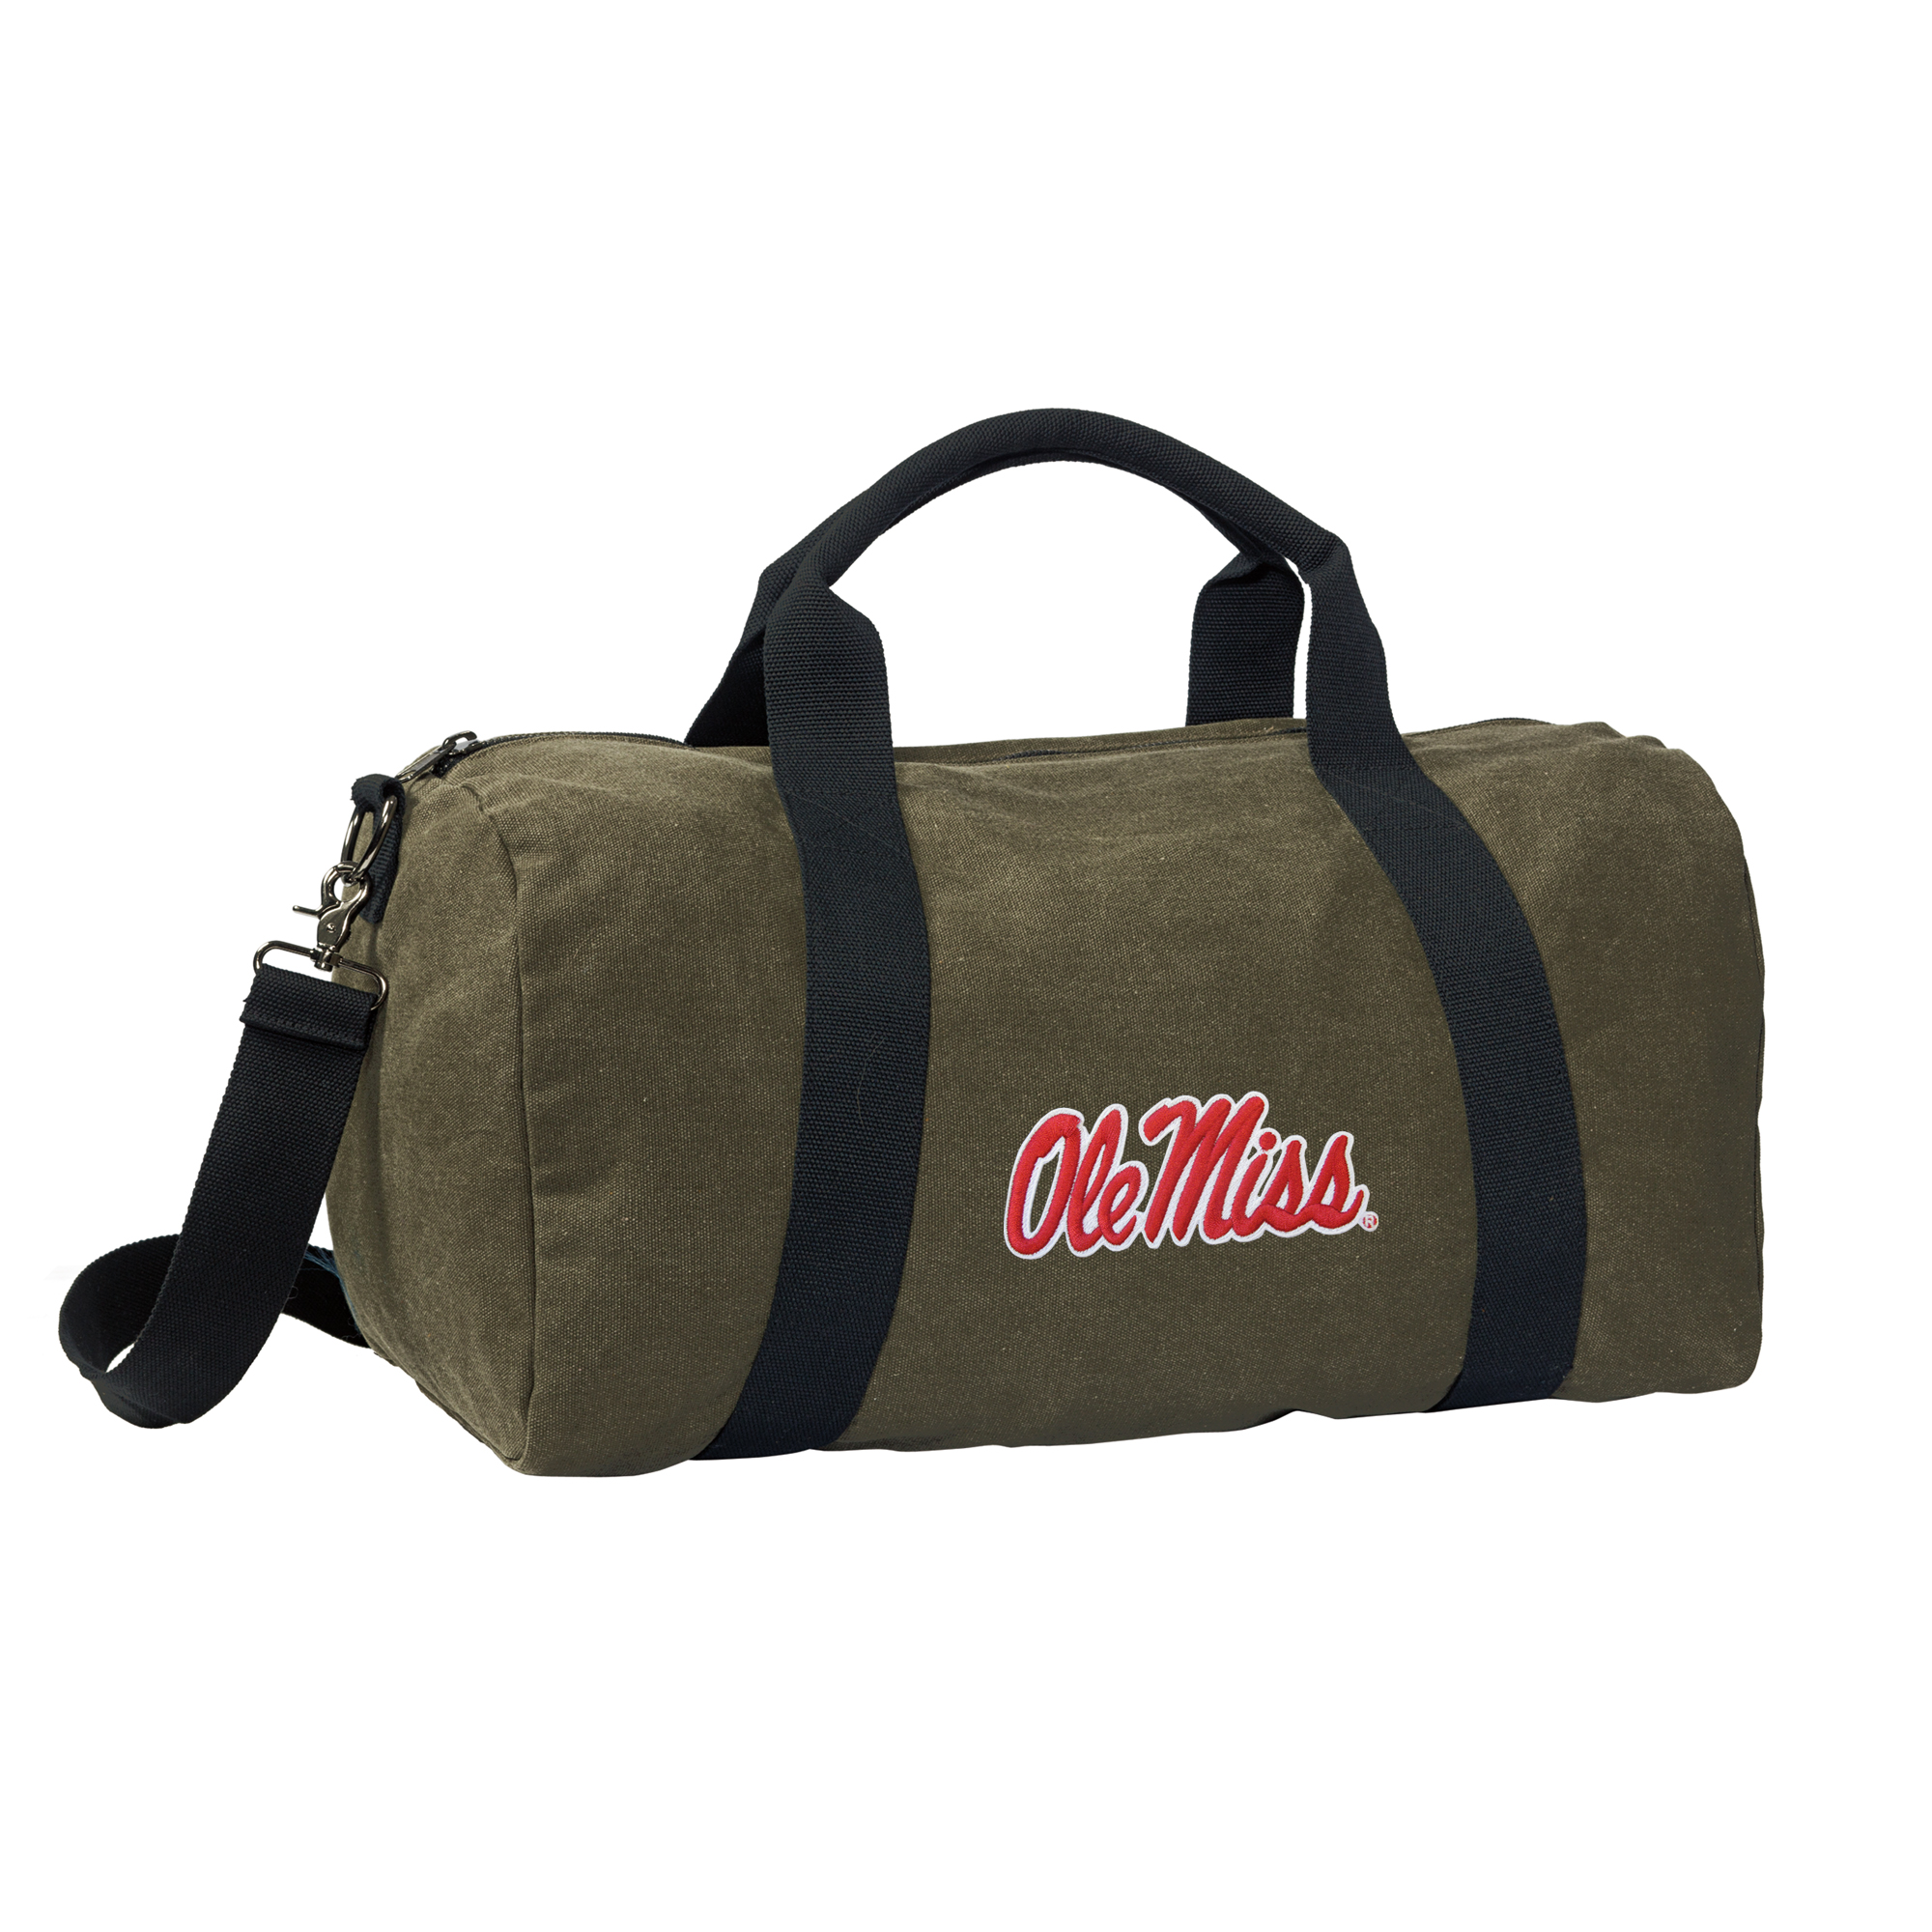 University of Mississippi Duffle Bag CANVAS Ole Miss Luggage Bag by